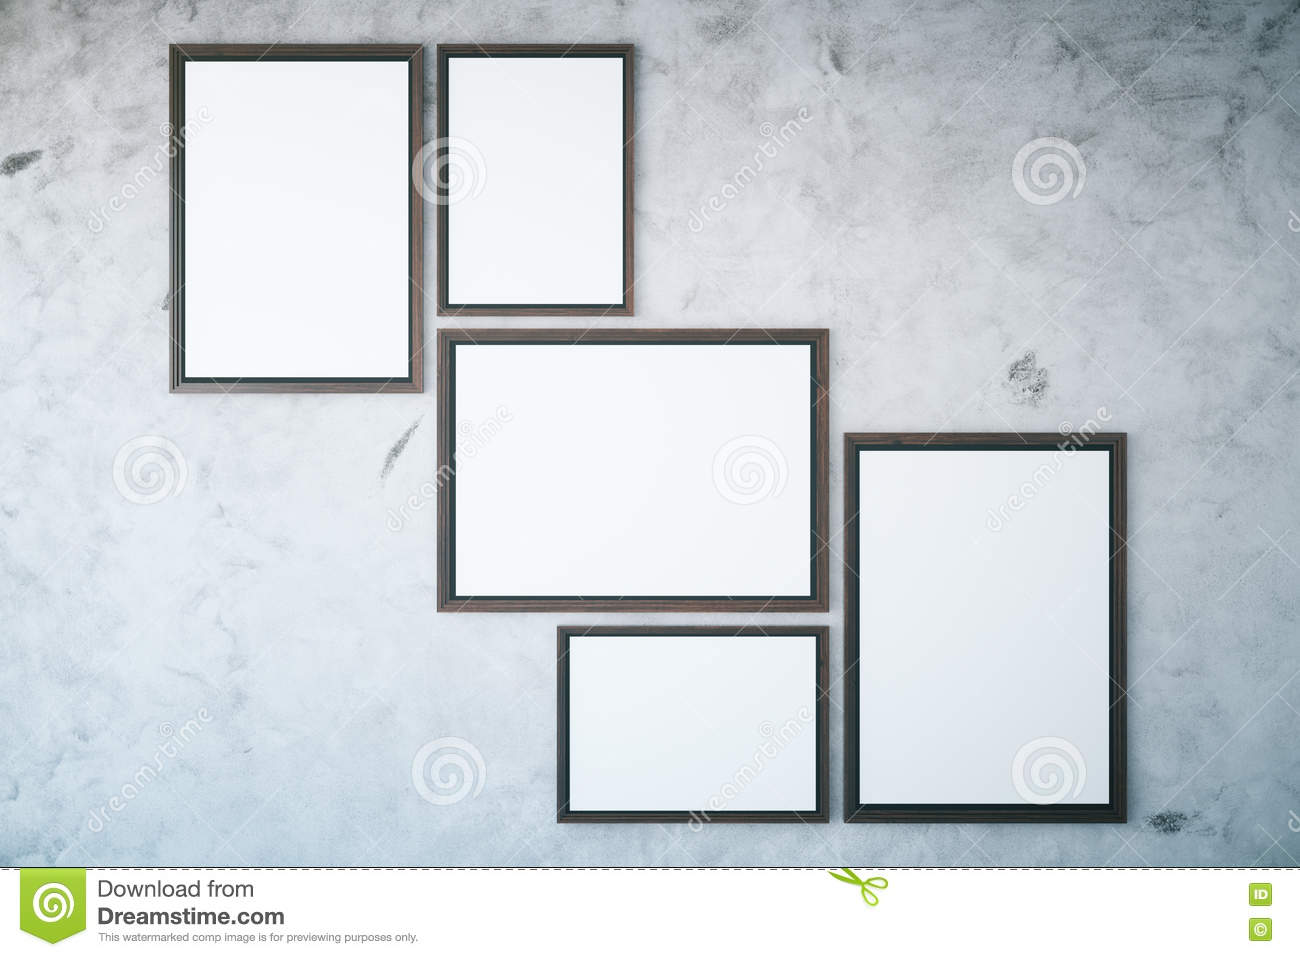 Concrete Wall With Empty Frames Stock Illustration - Illustration of ...